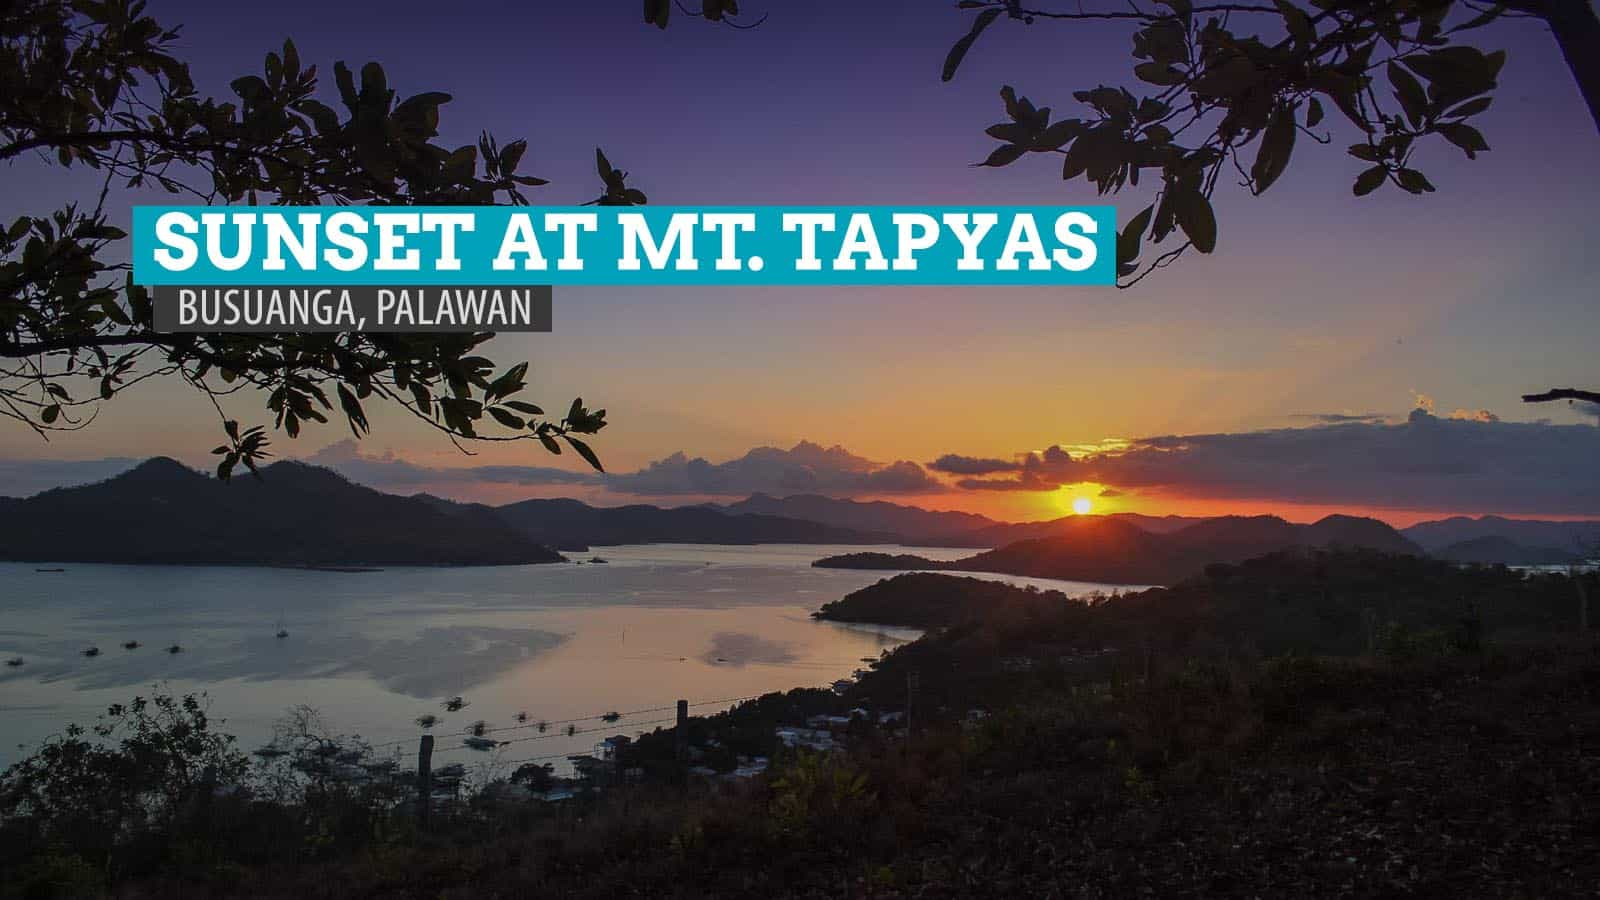 Mt. Tapyas: Chasing Sunsets in Coron, Palawan, Philippines